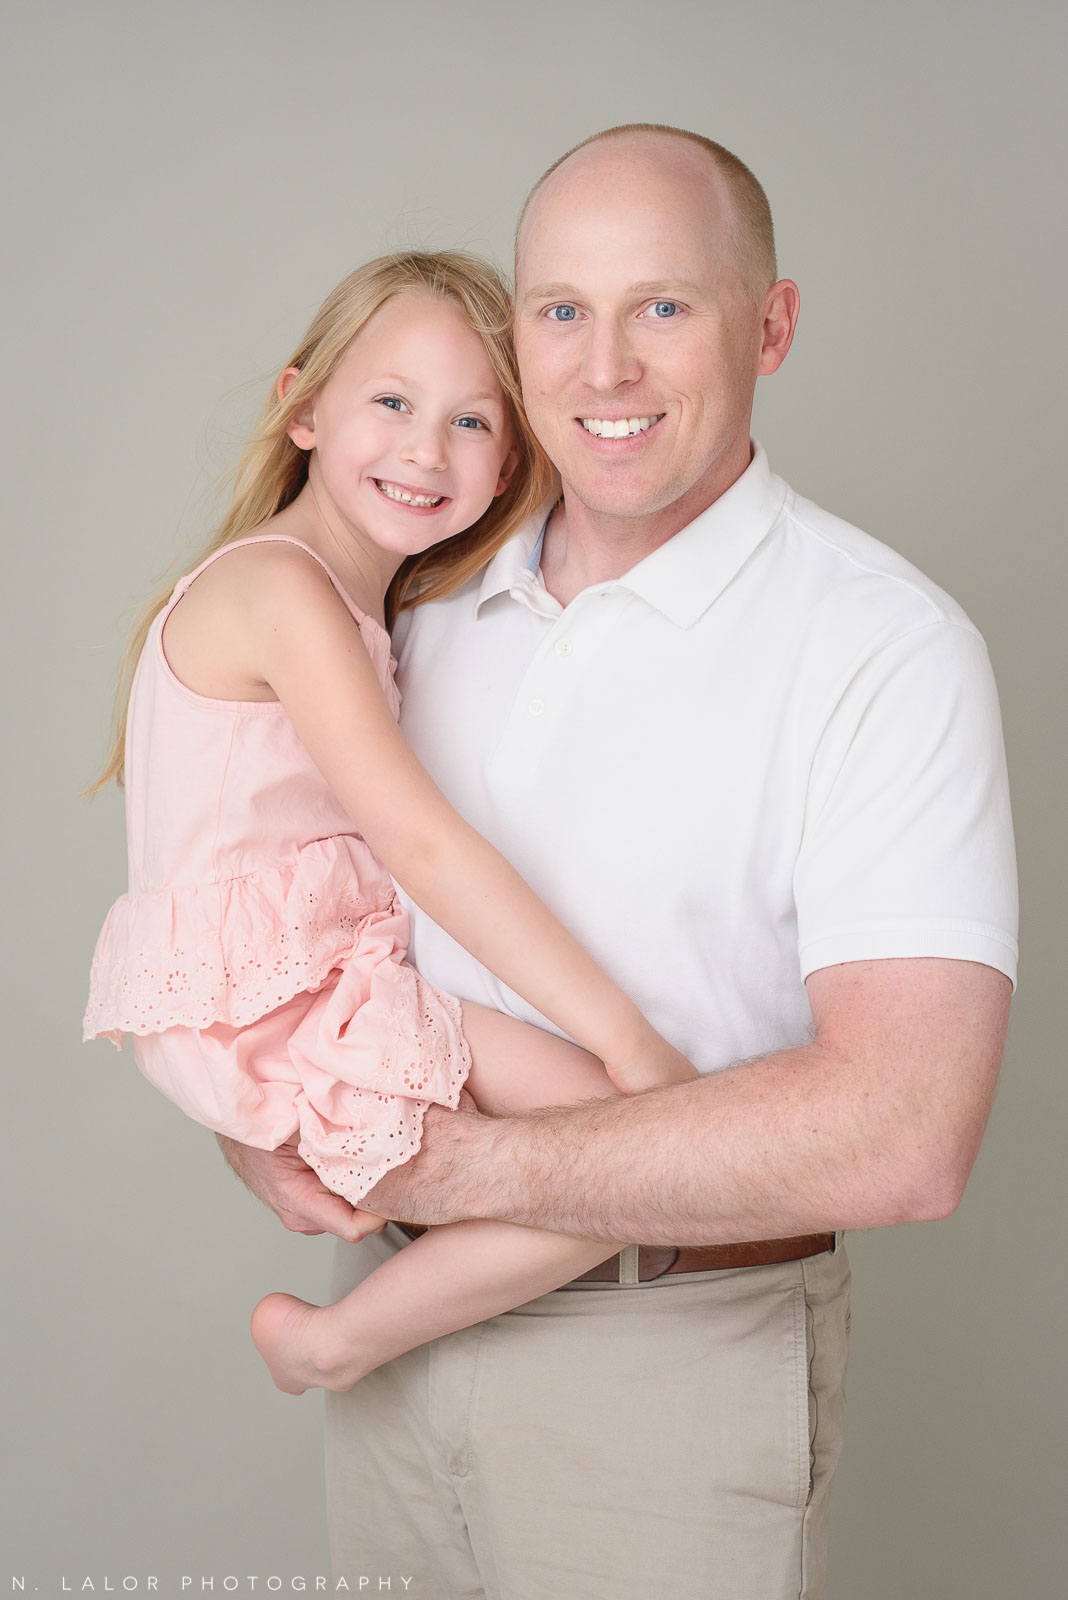 Dad with daughter. Family photo session with N. Lalor Photography. Greenwich, Connecticut studio photographer.